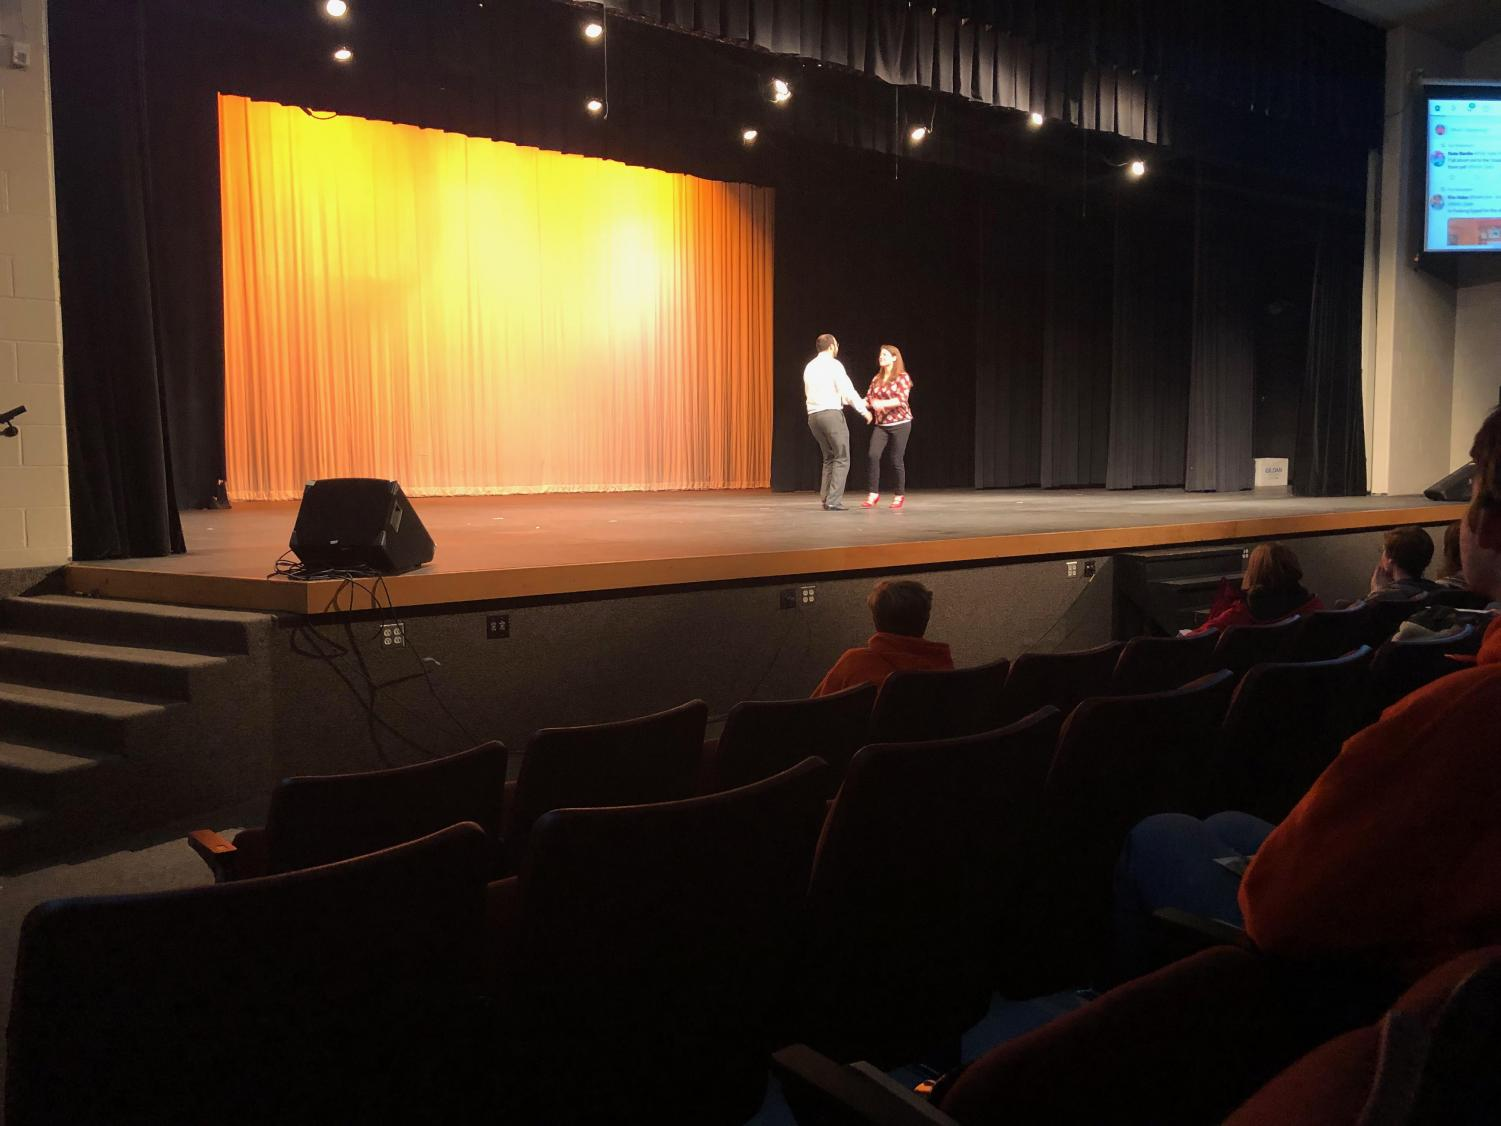 Pictured here are exhibition dancers, Mr. and Mrs. Lawerence.